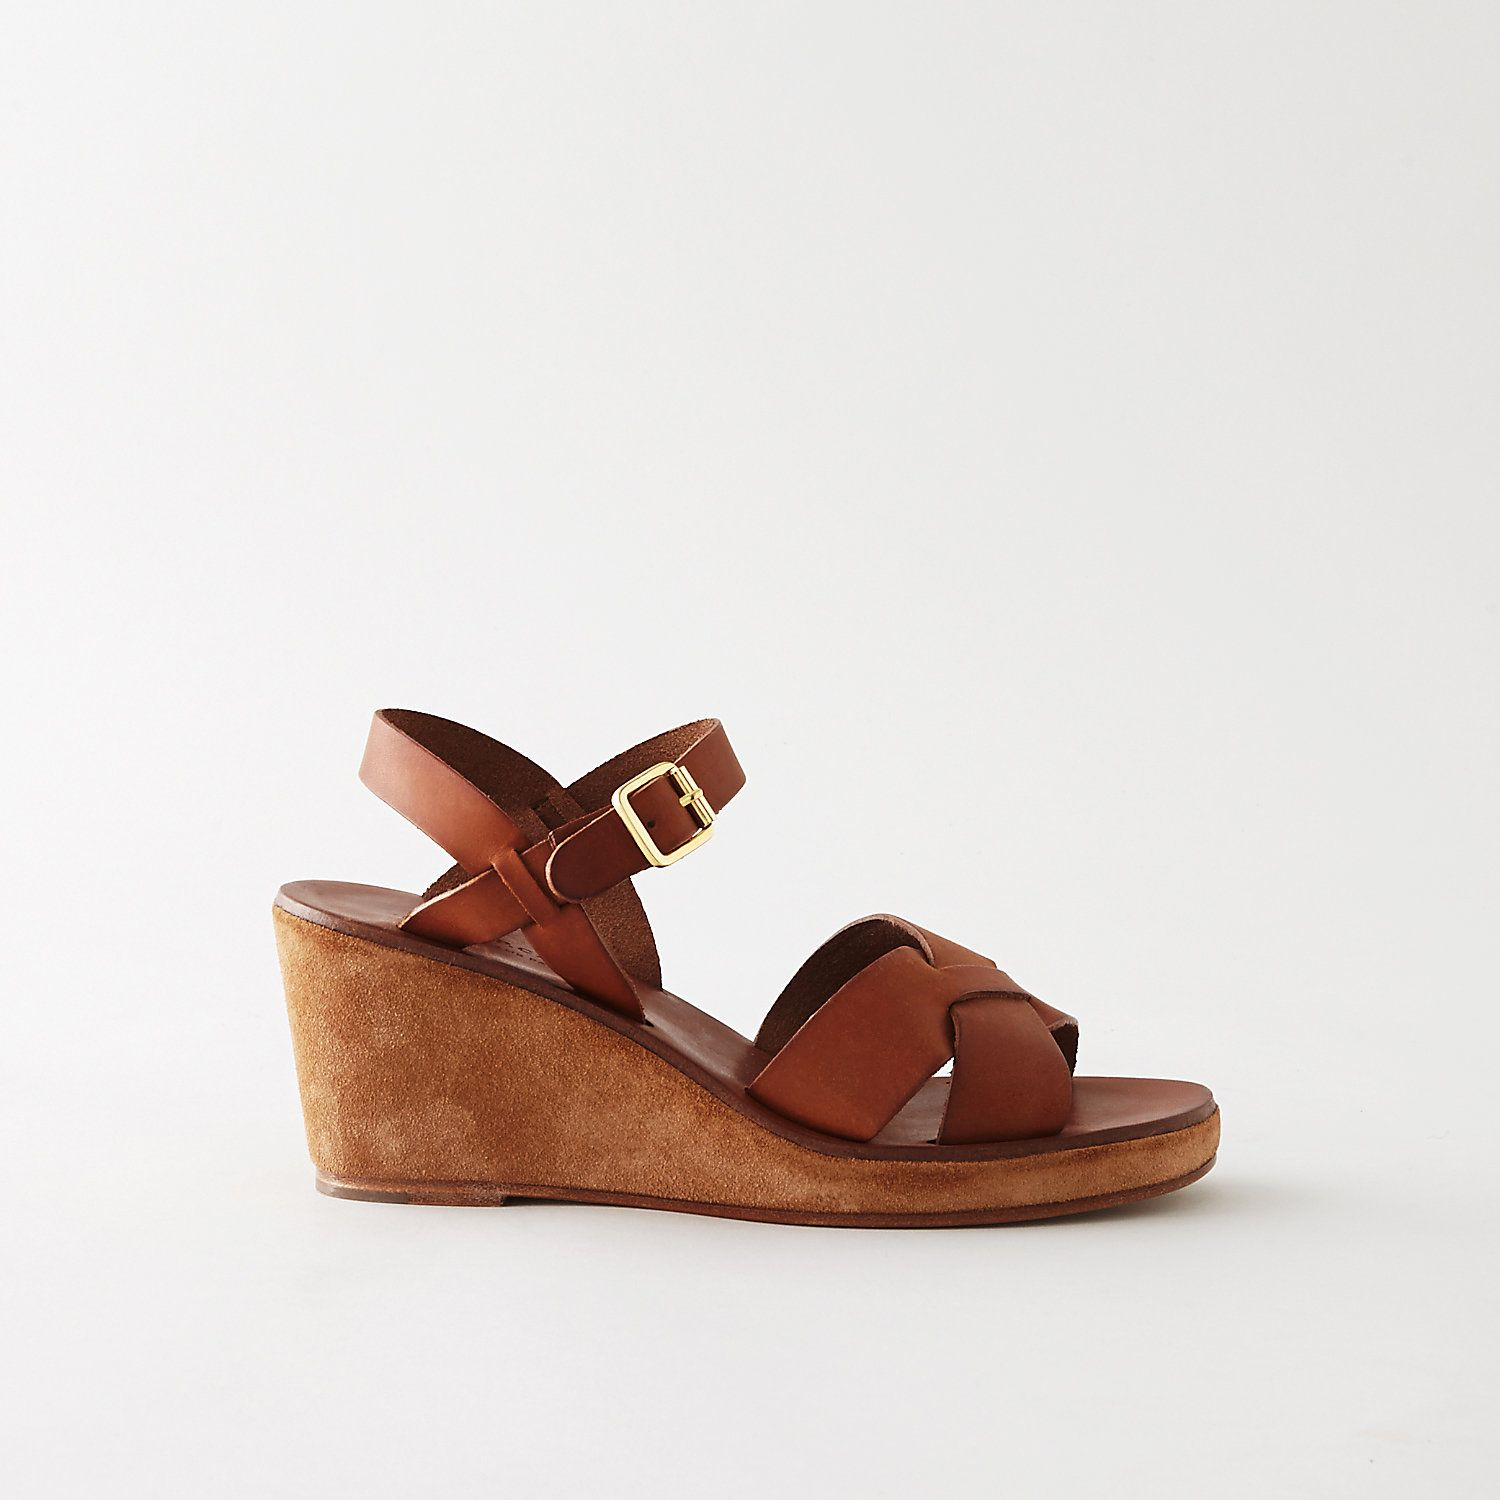 "A.P.C. Classic Wedge Sandals, $400; &lt;a href=""http://www.stevenalan.com/S15_NA_PS15_PXADX_F50021.html?dwvar_S15__NA__PS15__PXADX__F50021_color=1981#cgid=womens-shoes-and-accessories-shoes&amp;amp;view=all&amp;amp;frmt=ajax&amp;amp;start=0&amp;amp;hitcount=78""&gt;stevenalan.com&lt;/a&gt;   <!--EndFragment-->"